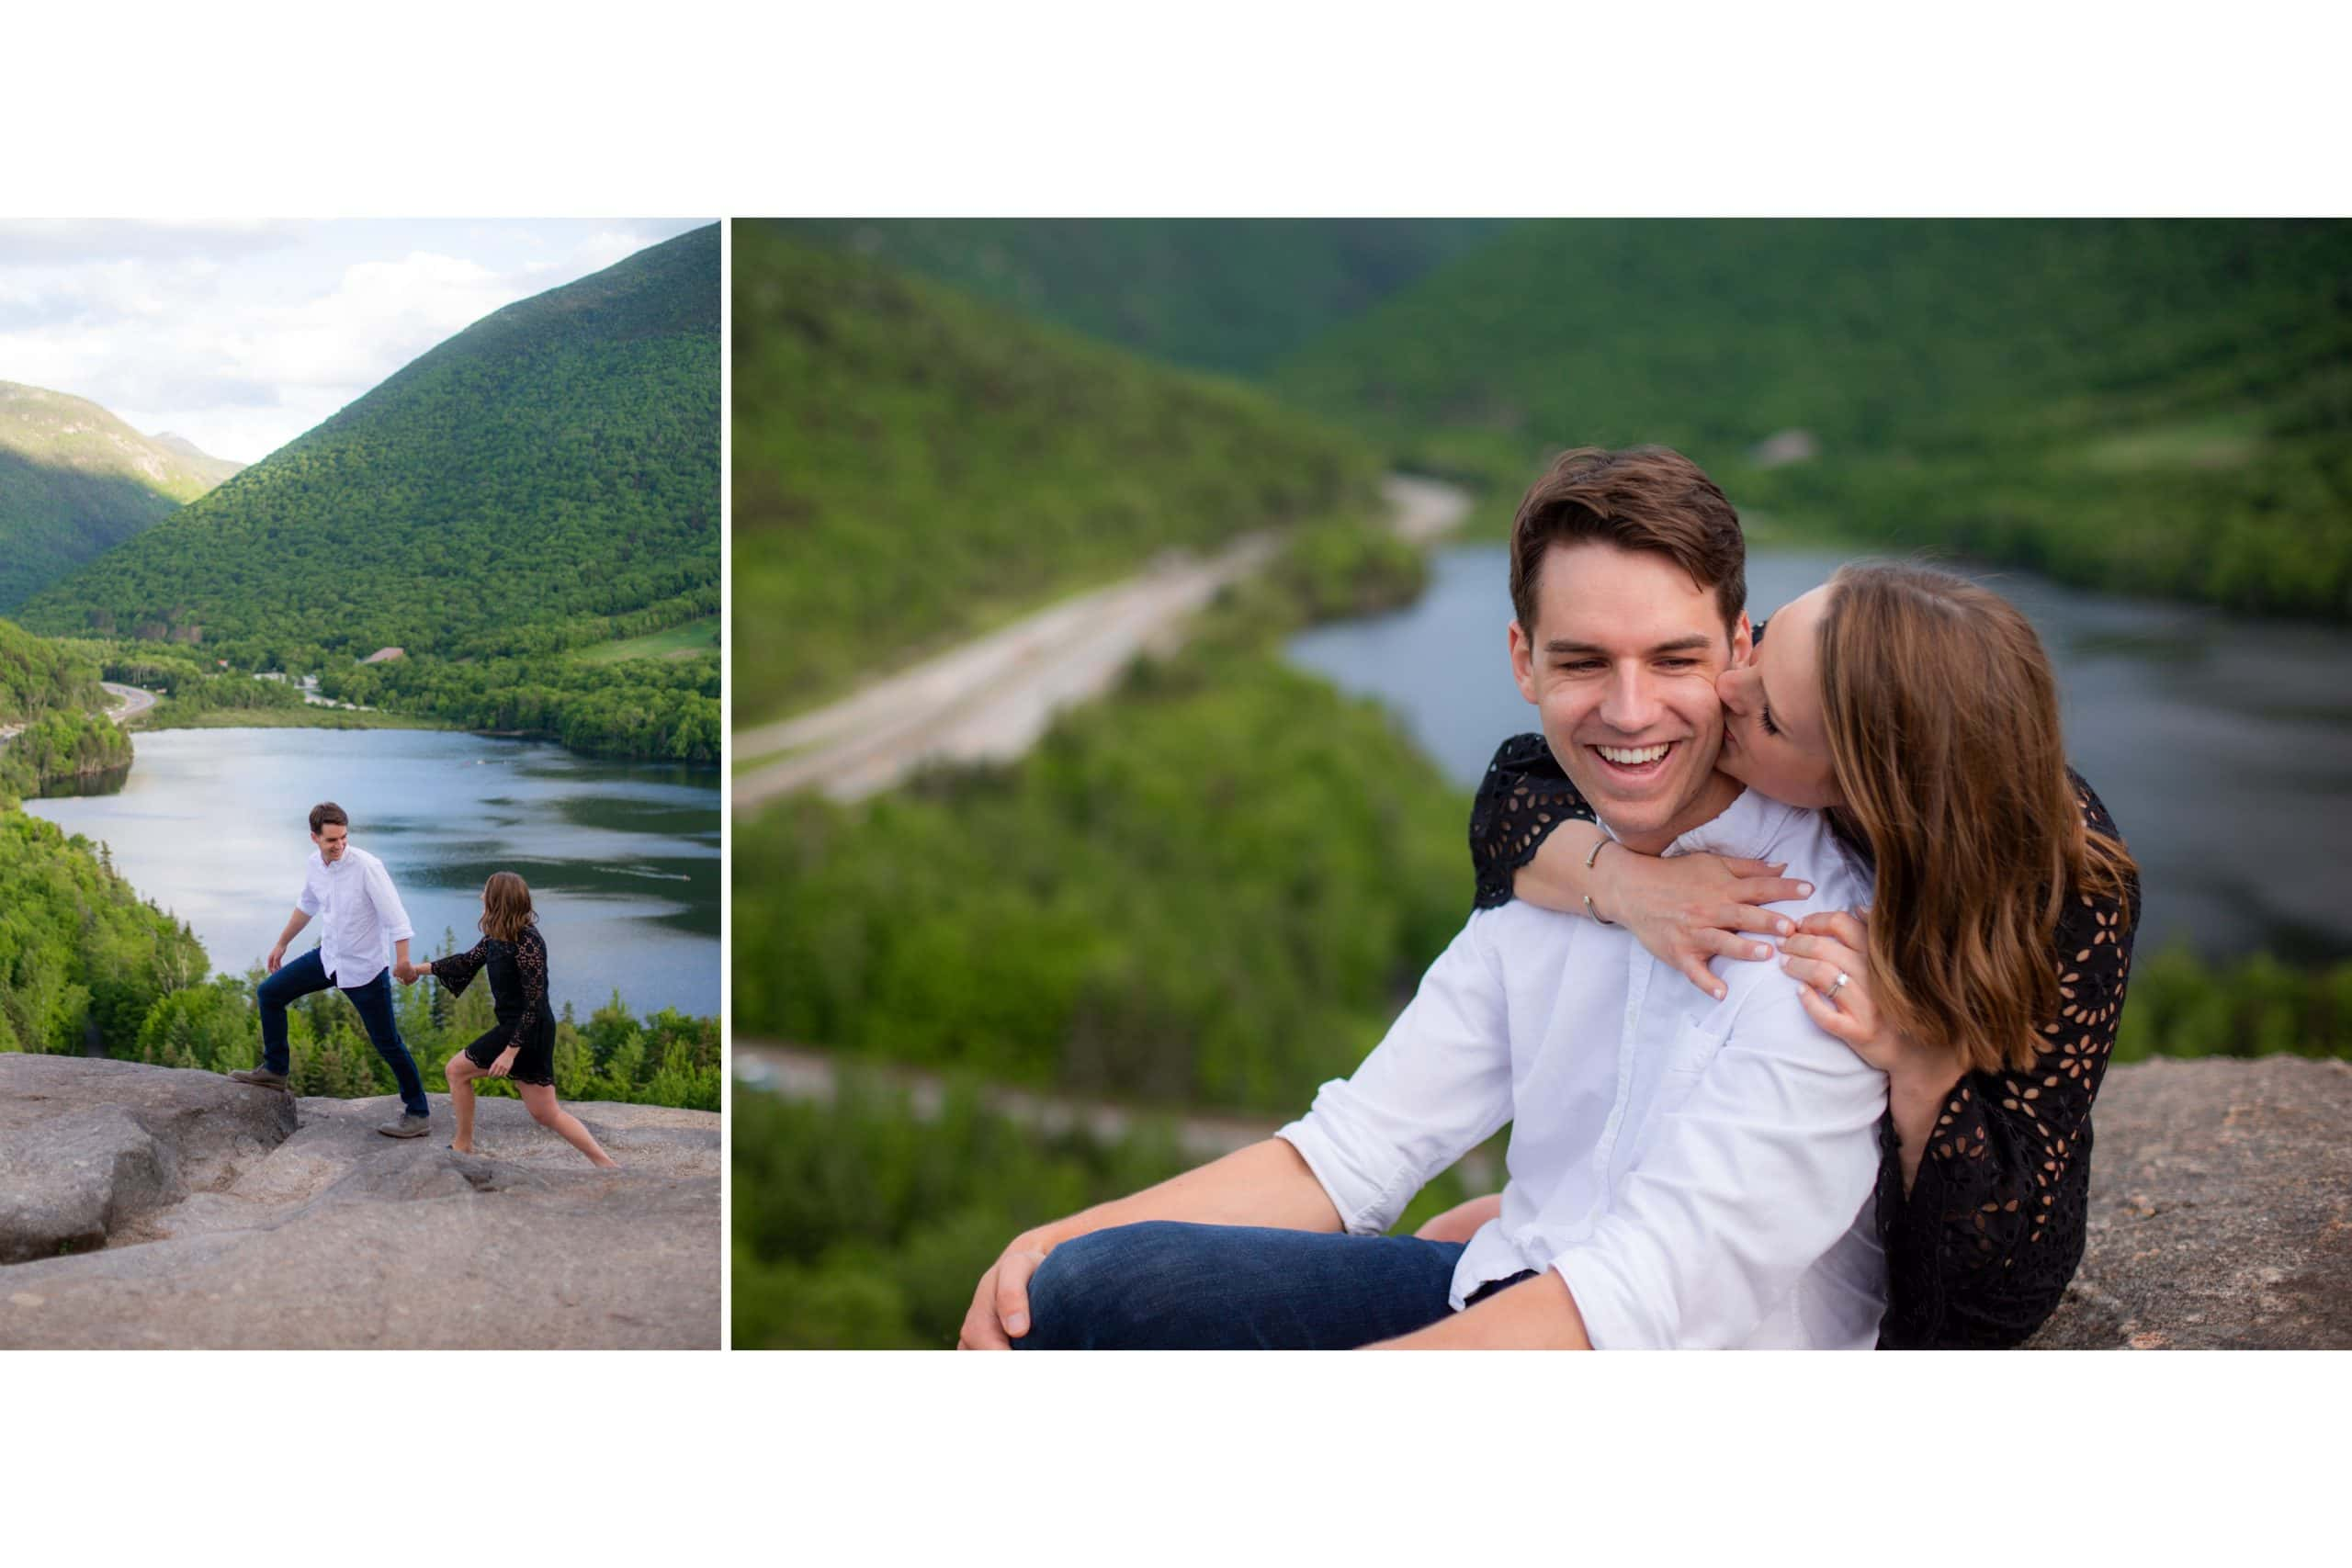 engagement photography couple scenic